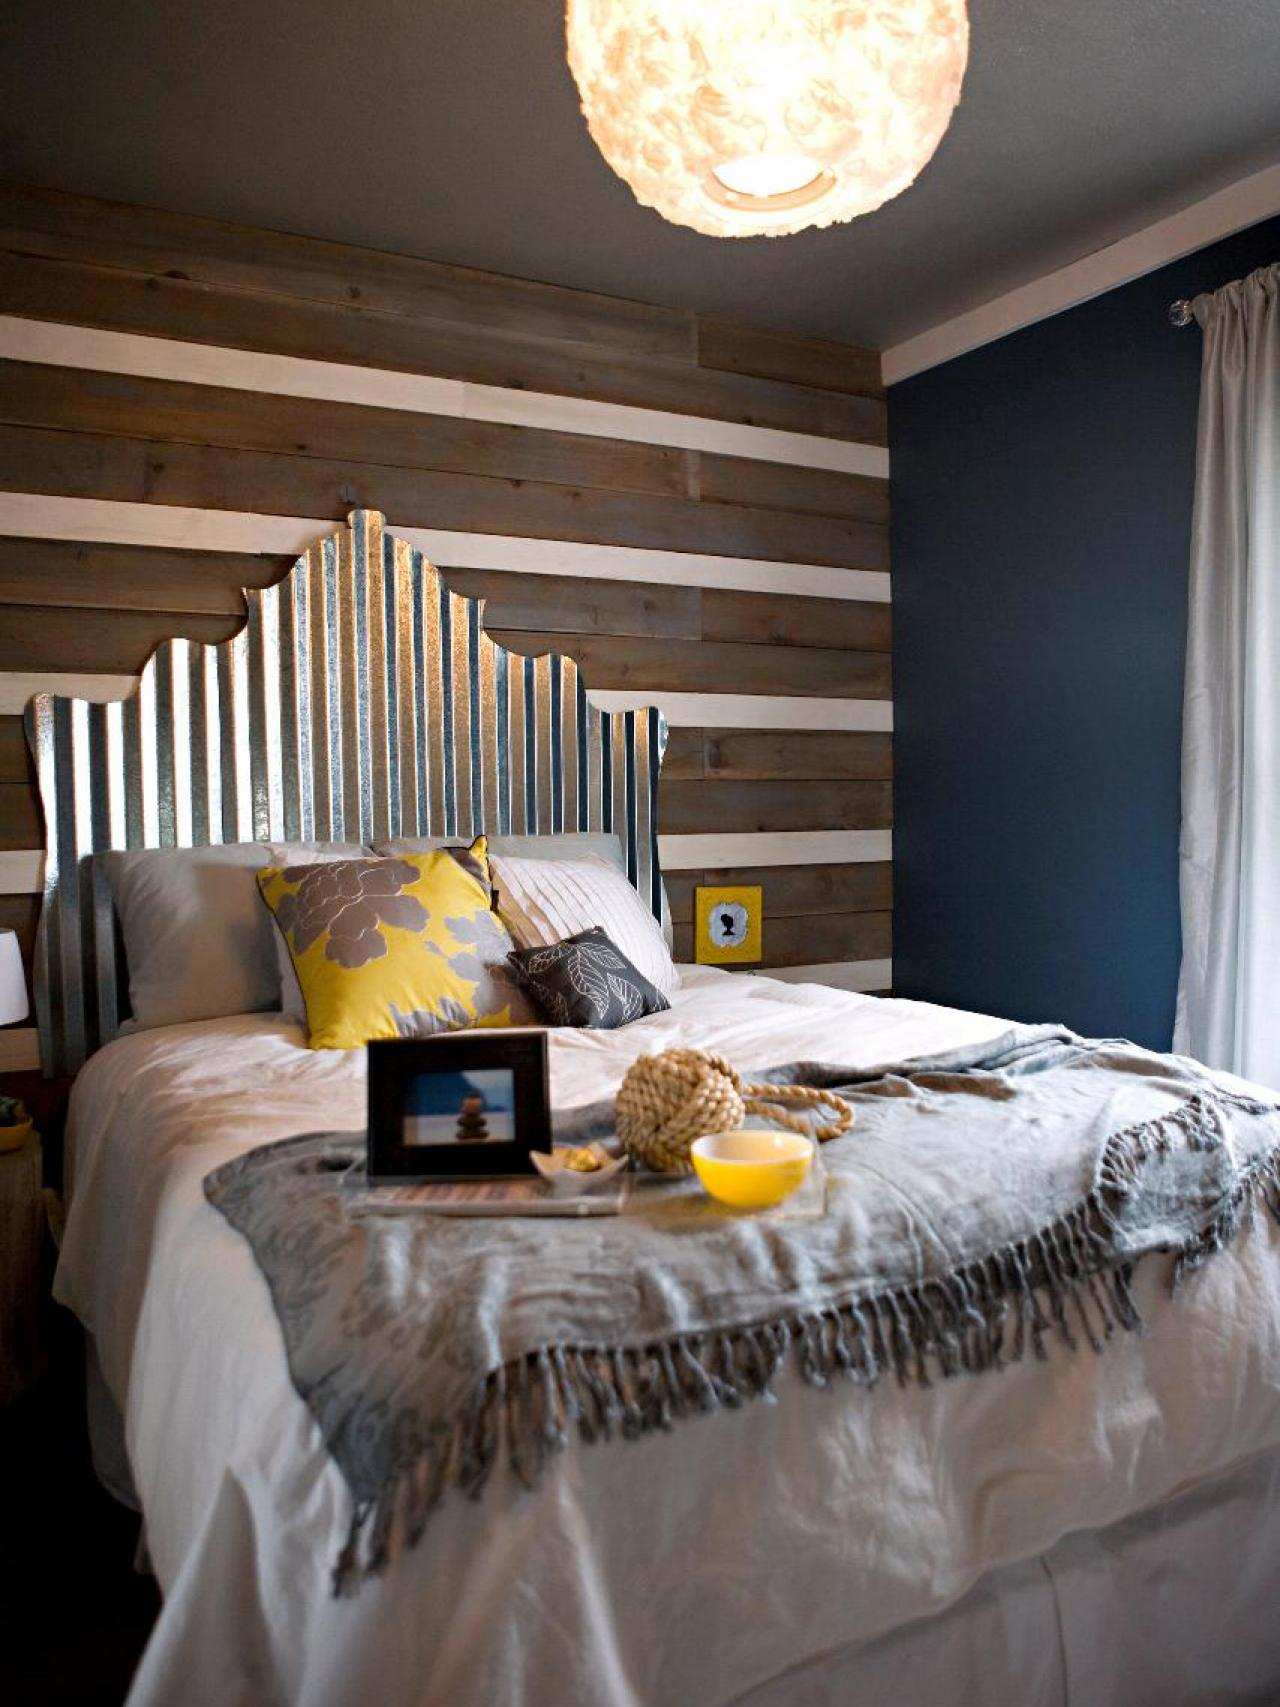 Creative upcycled headboard ideas bedrooms bedroom for Bedroom headboard ideas